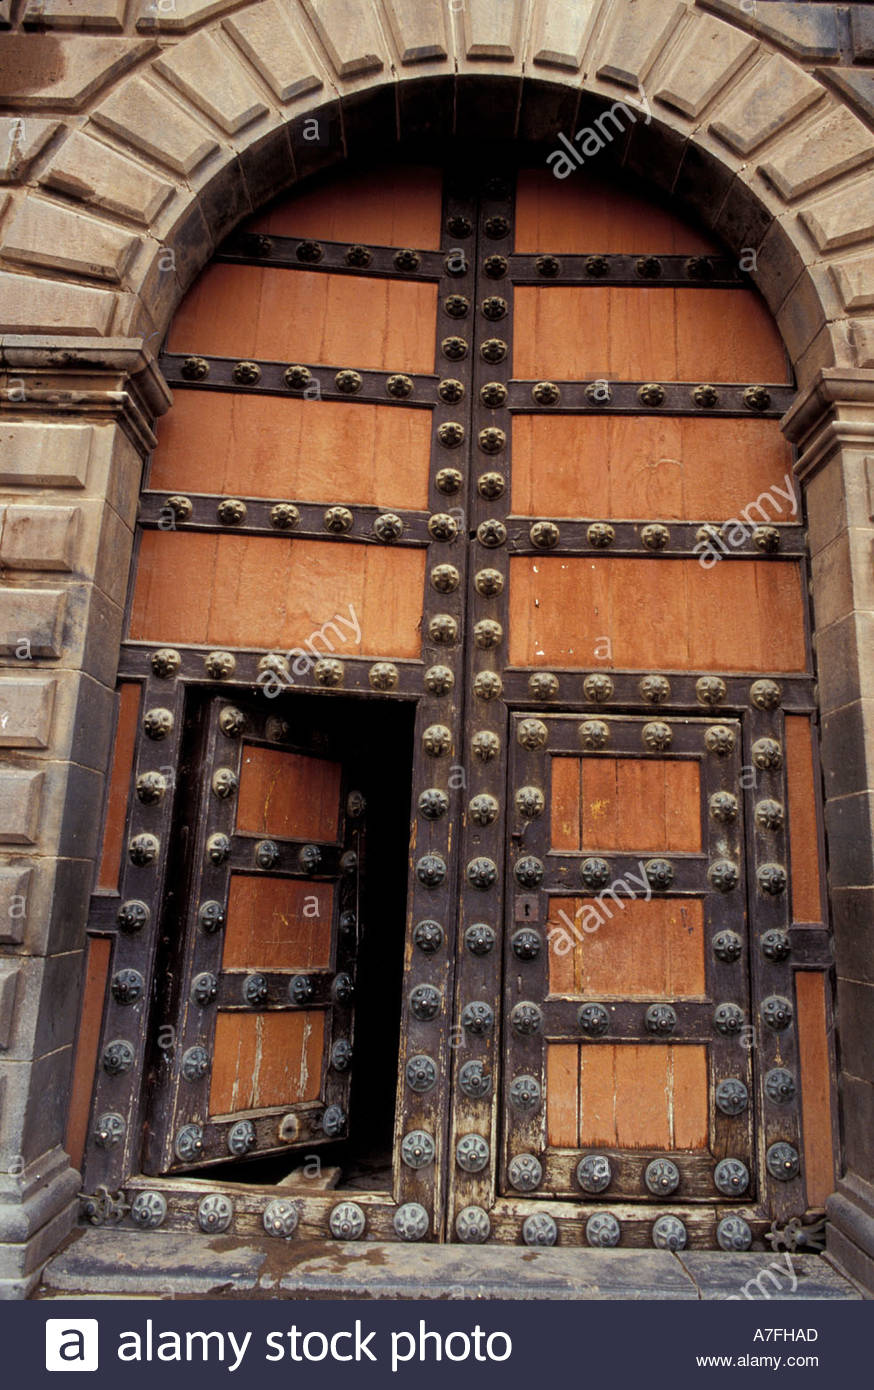 SA Peru Cuzco Plaza de Armas Wooden doors of the cathedral (1669 & SA Peru Cuzco Plaza de Armas Wooden doors of the cathedral ...